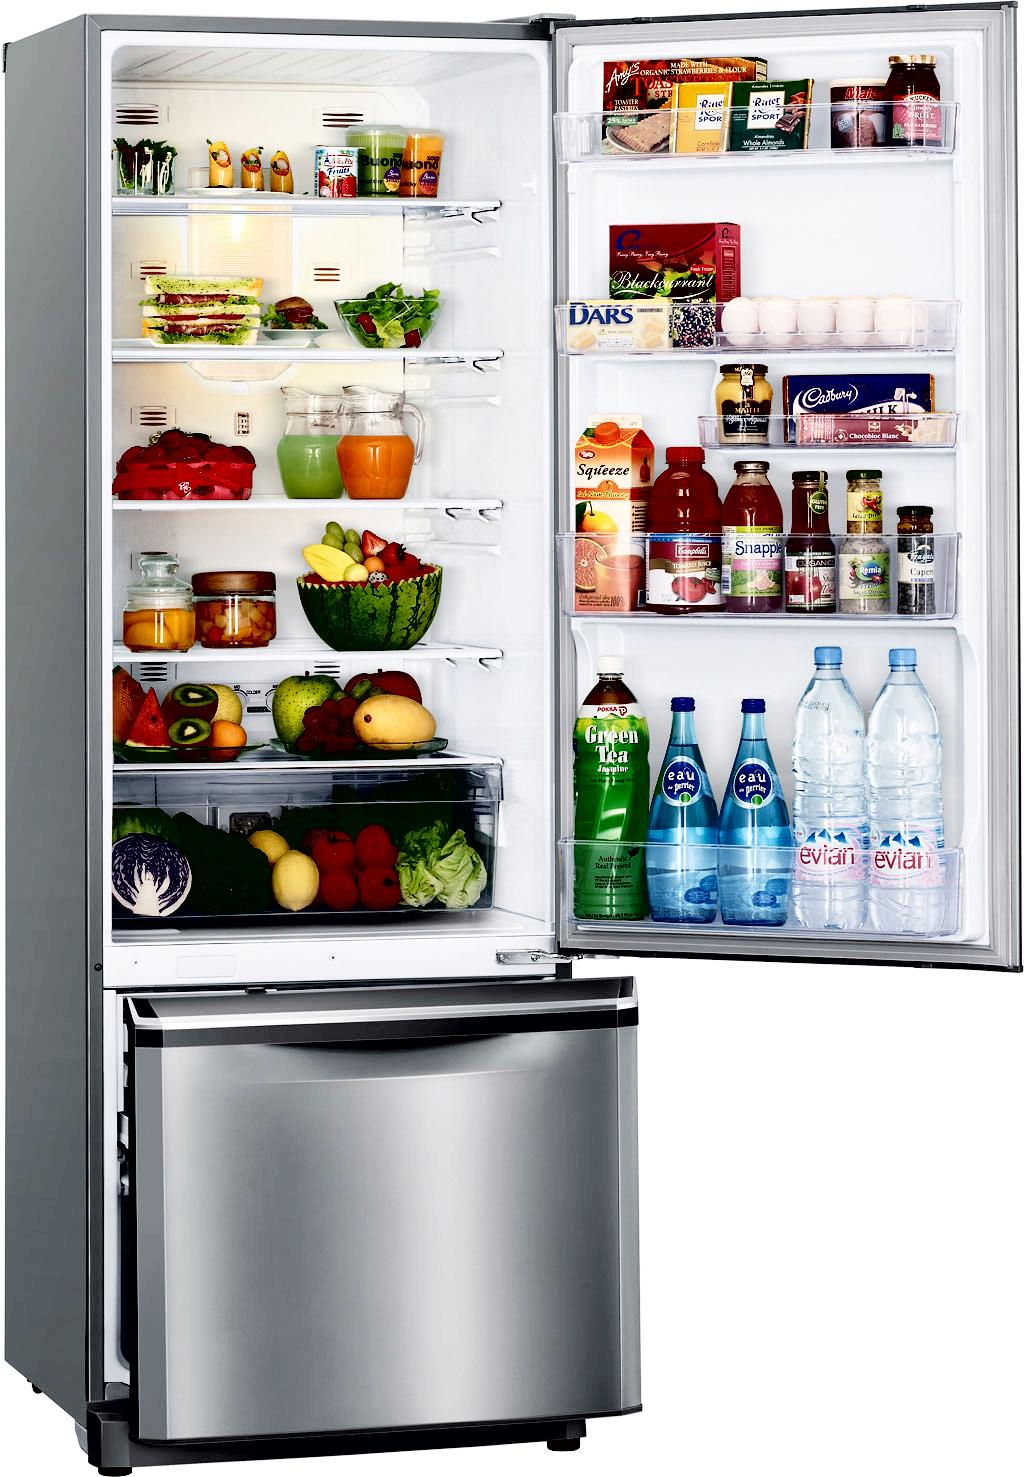 The refrigerator organizing and cleaning tips how to Can you put hot food in the refrigerator